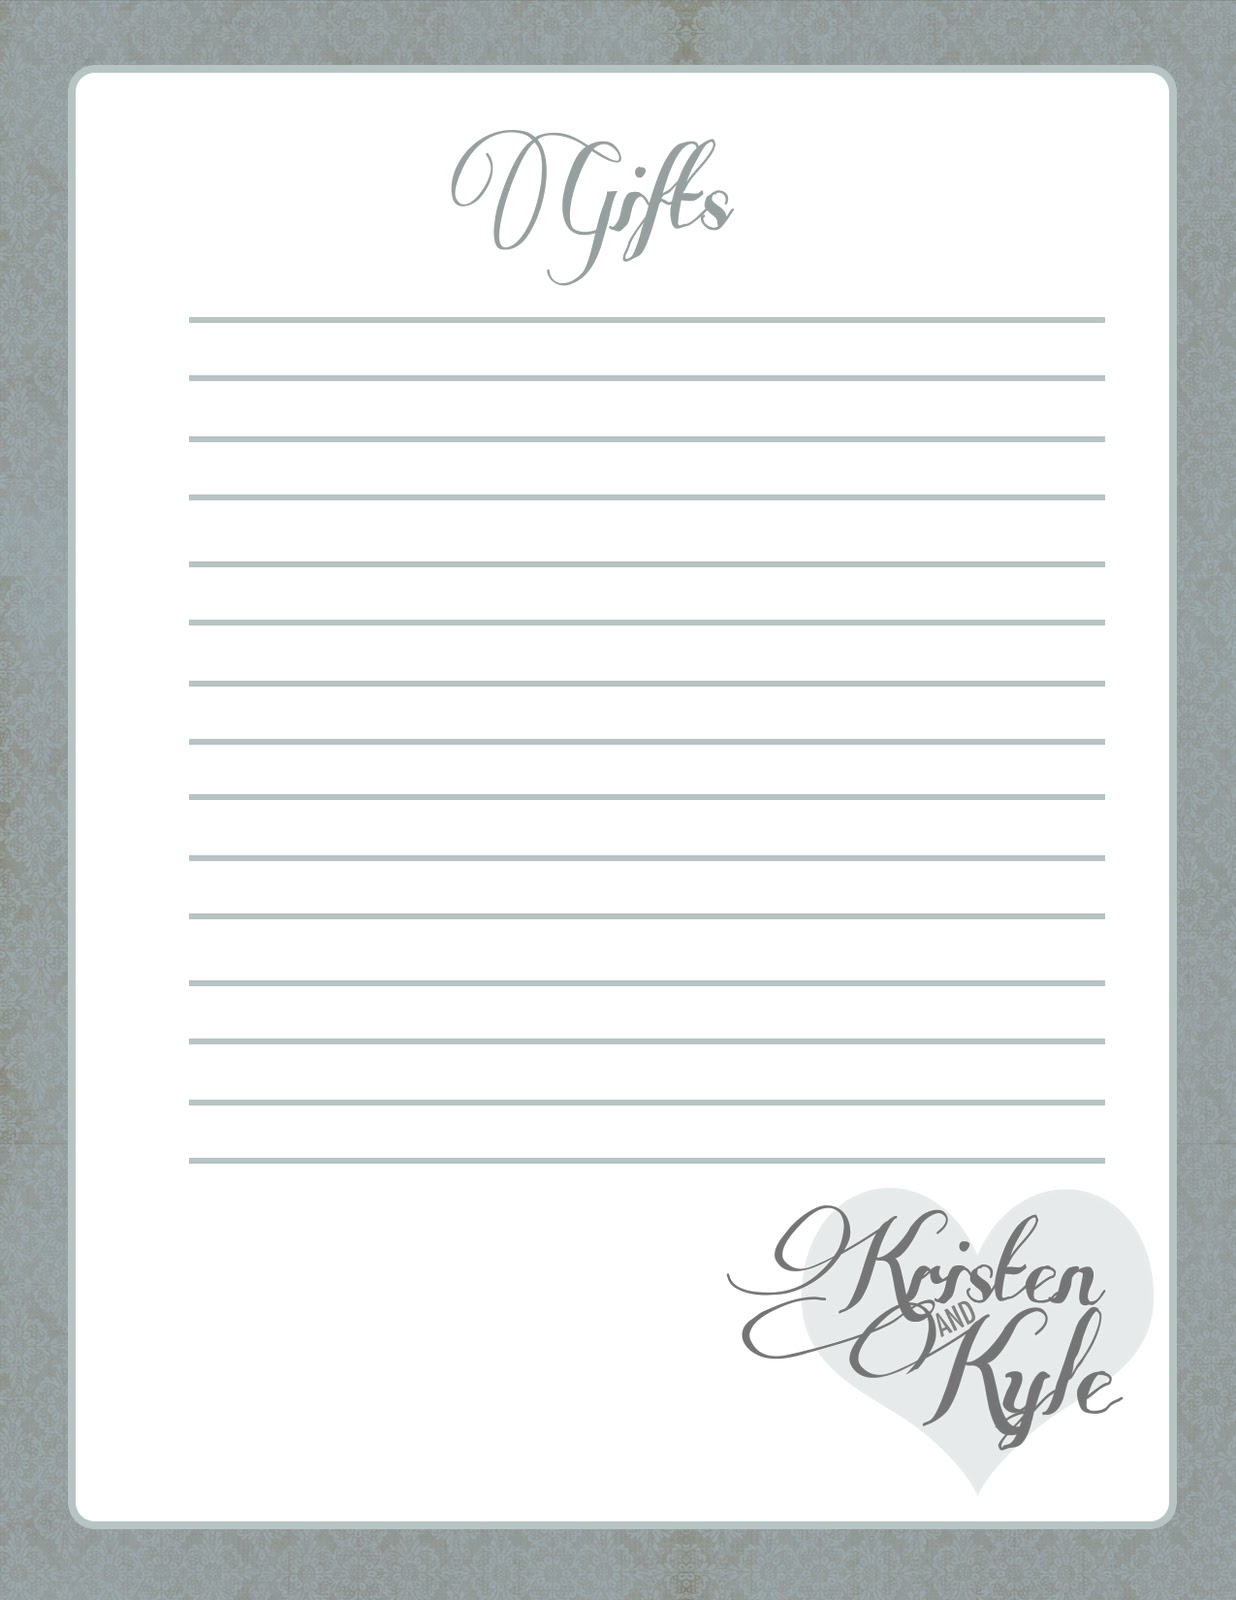 Bridal shower gift list template 28 images guest book for Wedding shower gift list template